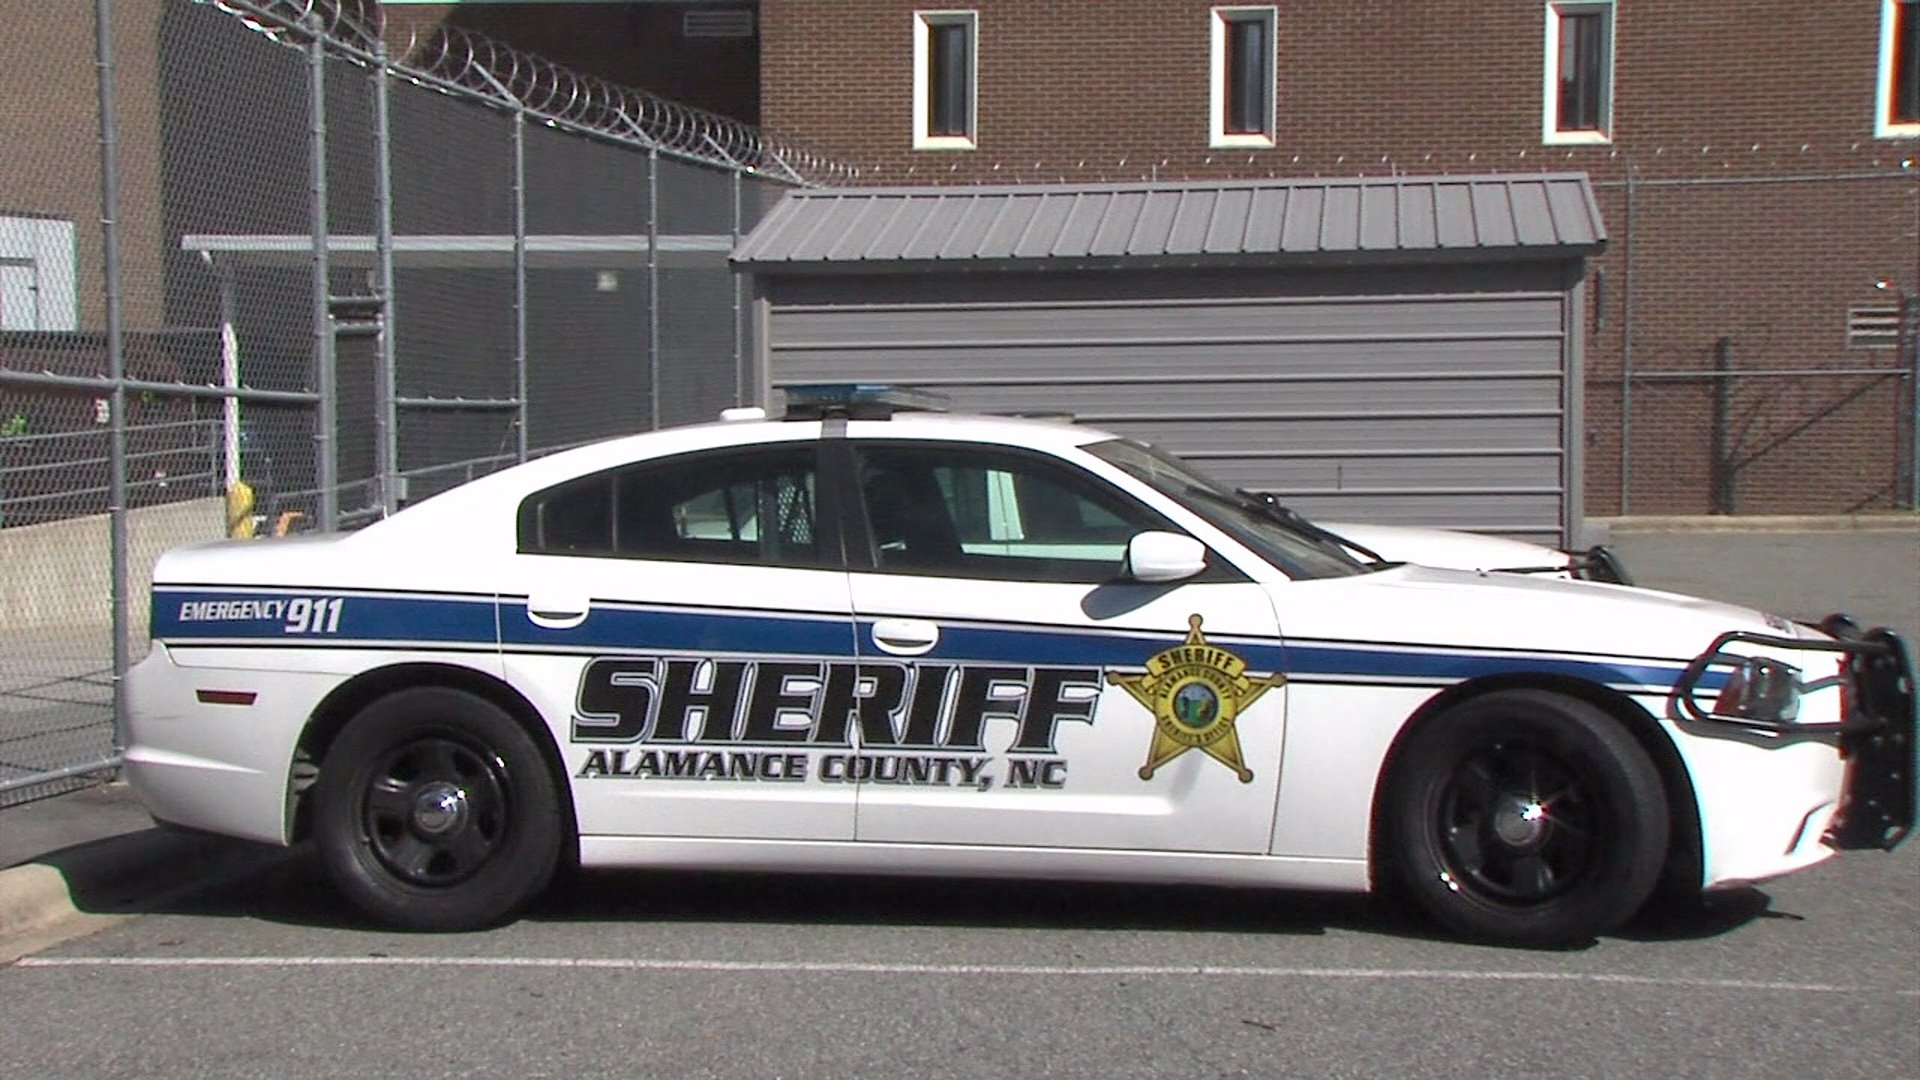 Alamance County Sheriff's Office vehicle (WGHP file photo)